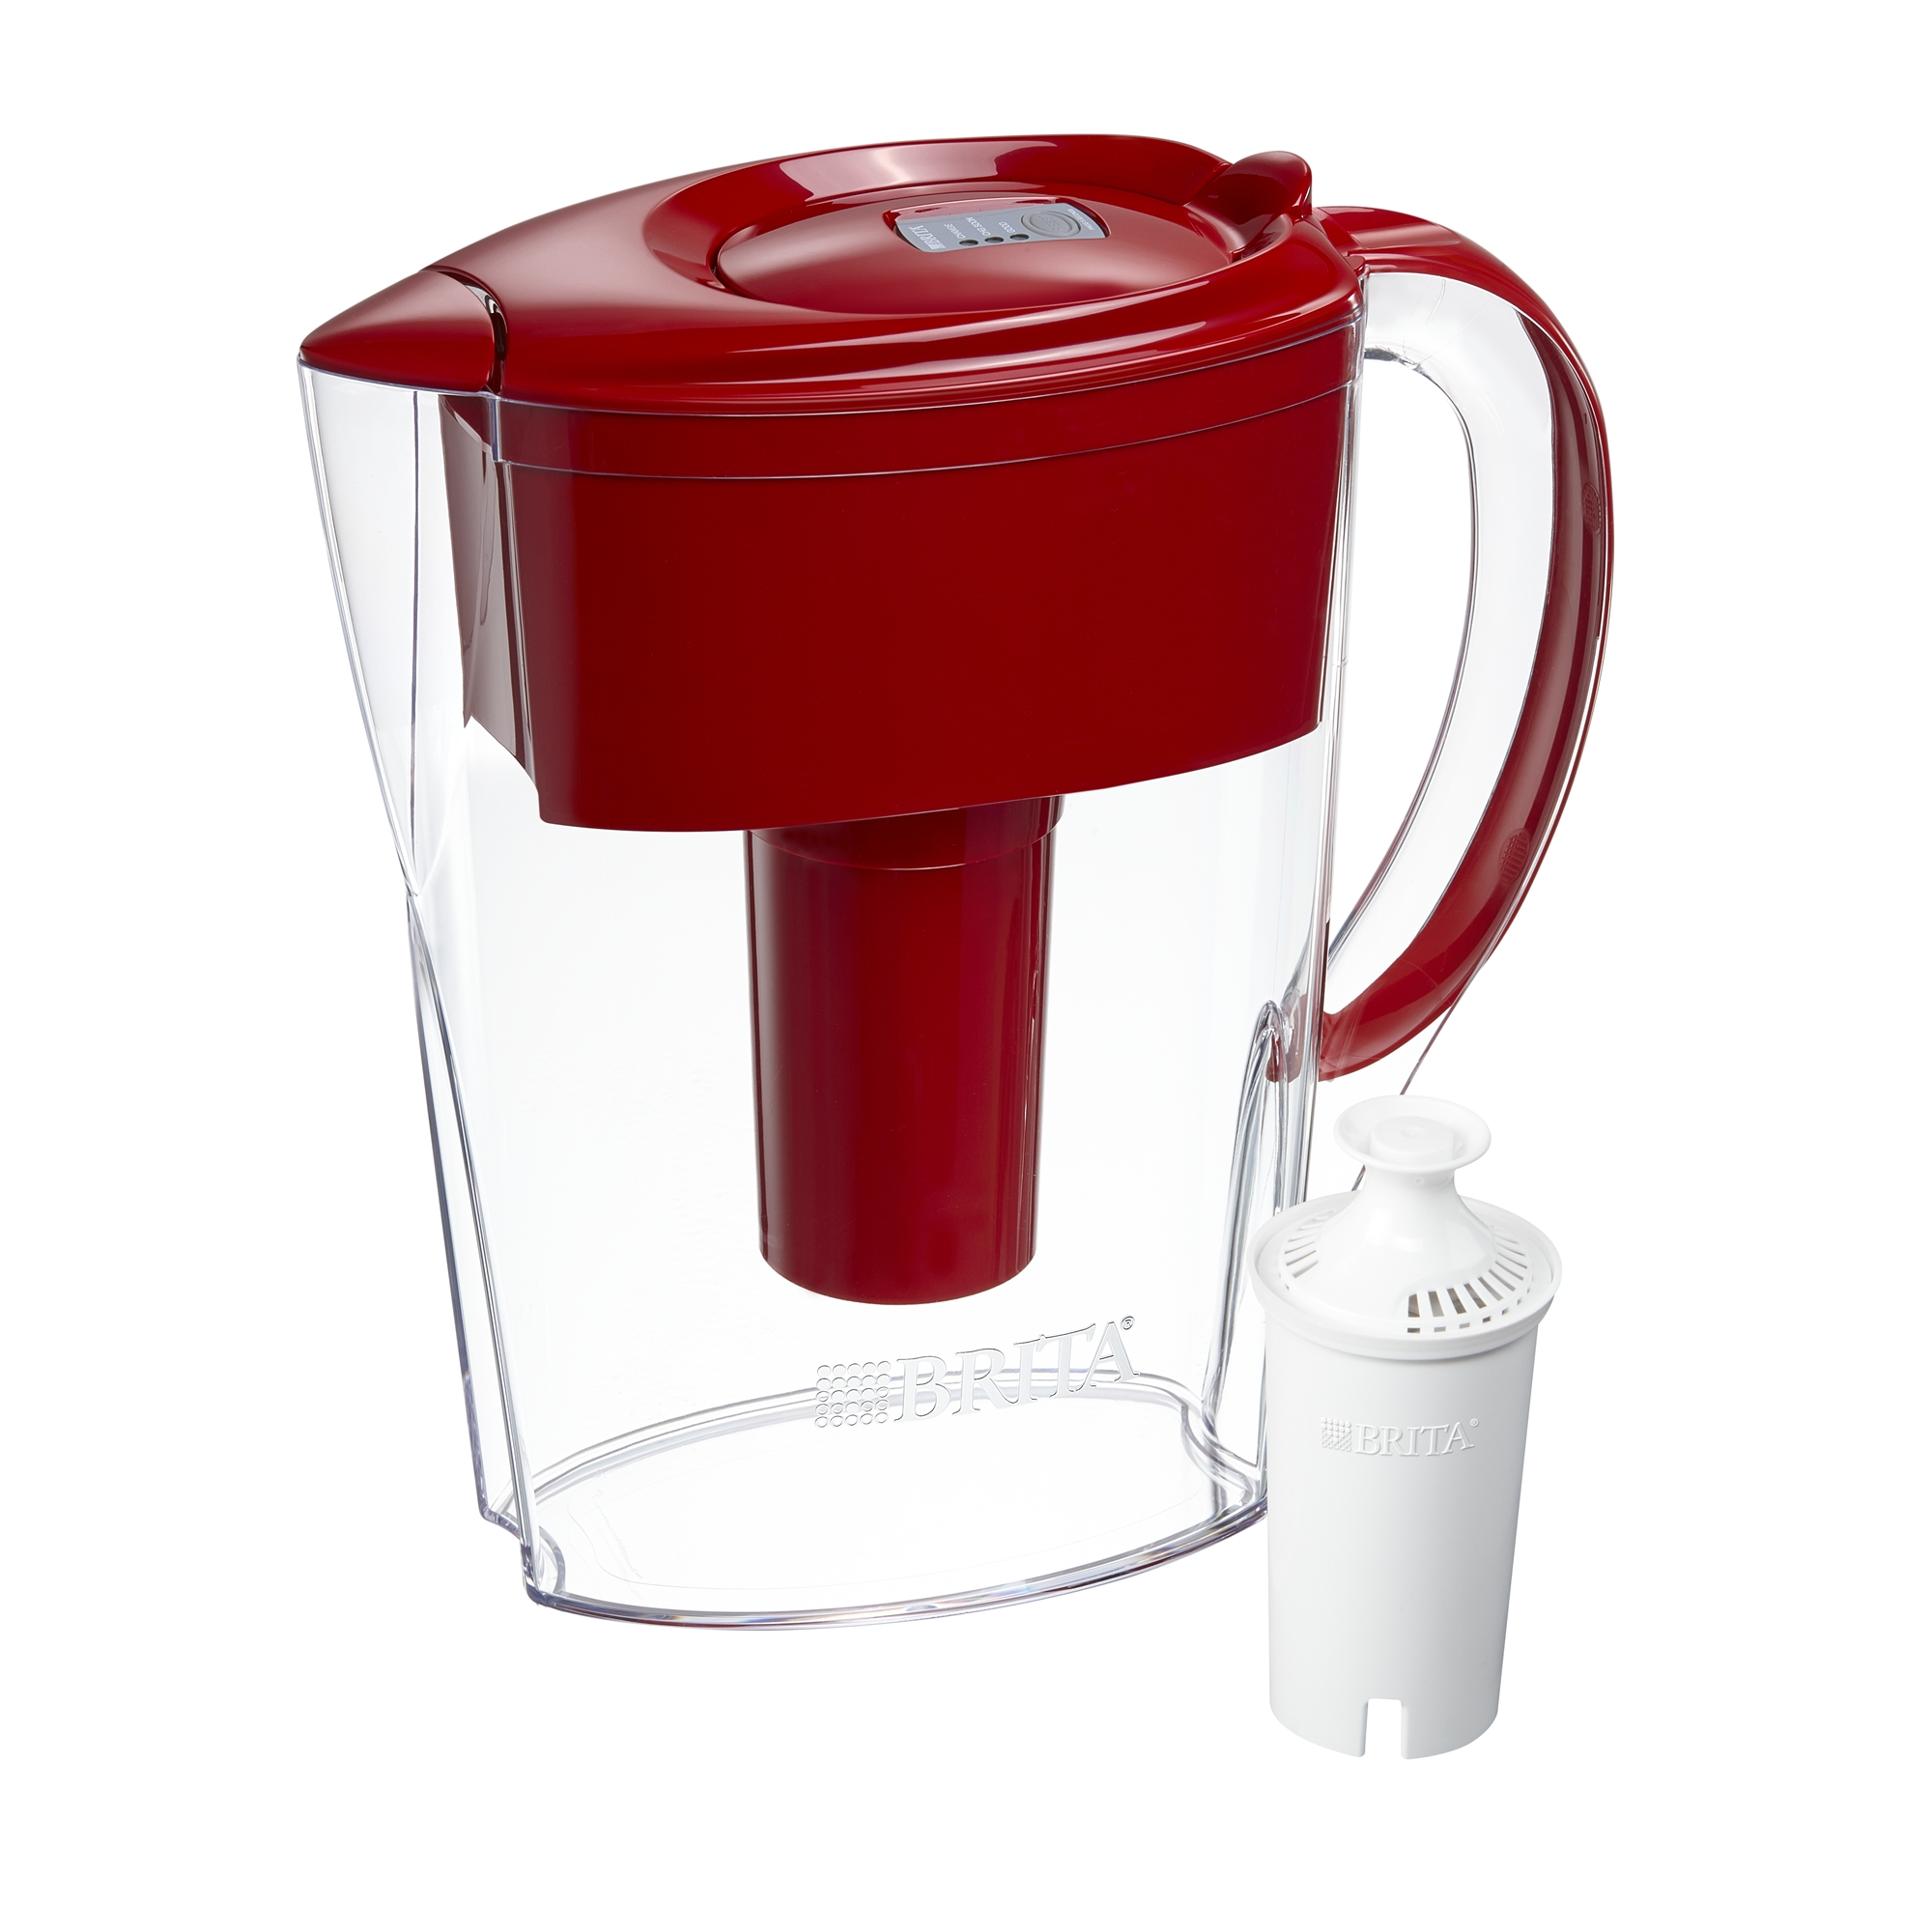 Brita Small Space Saver Water Pitcher with Filter - BPA Free - White - 6 Cup